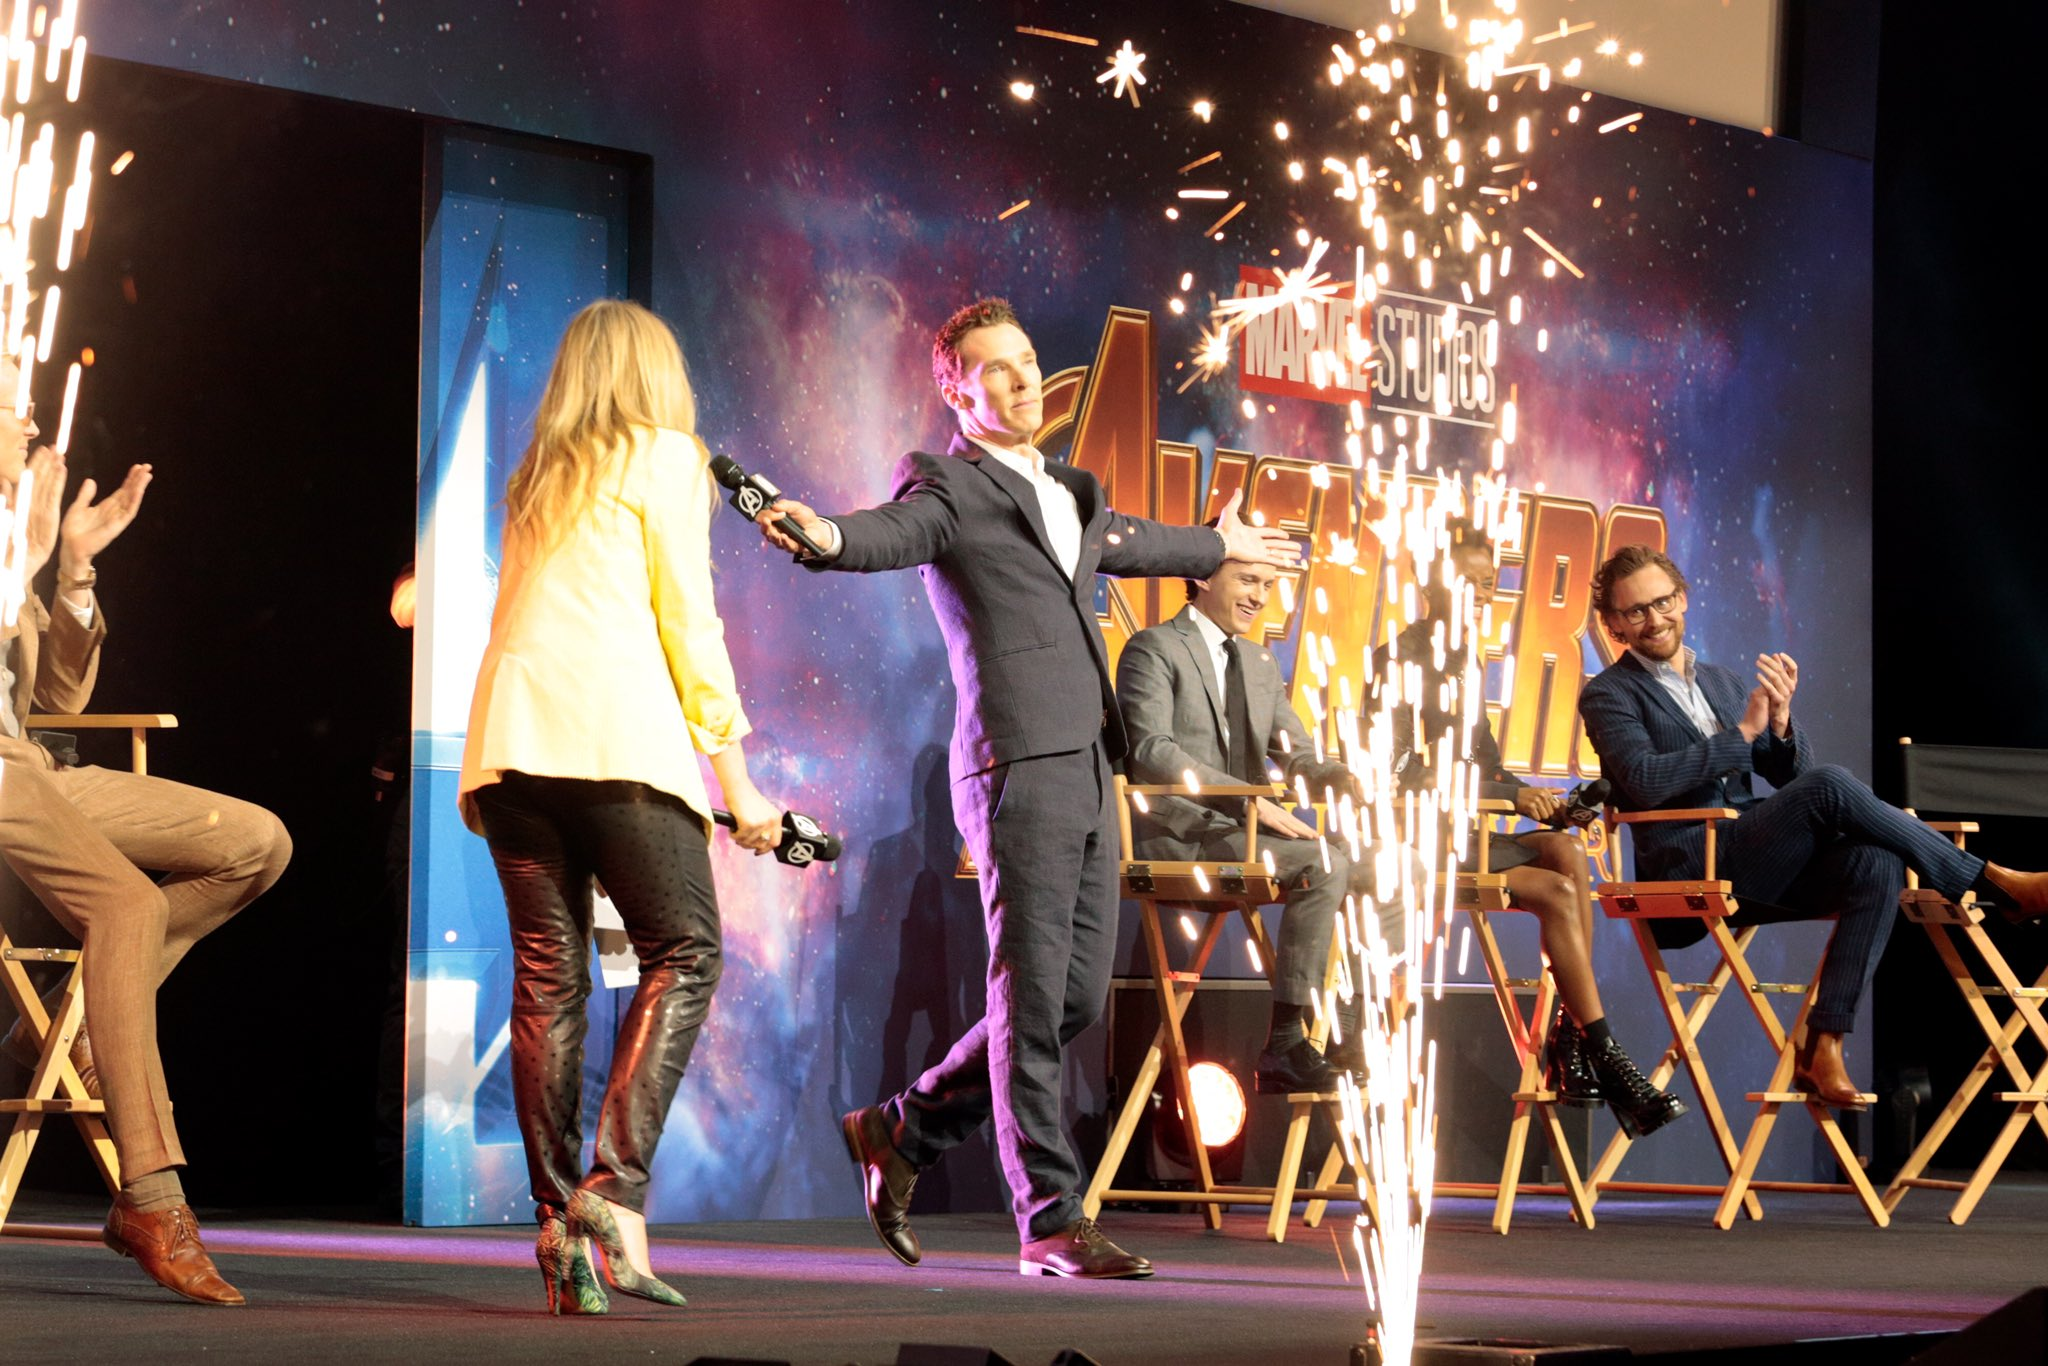 """See the photos from the Marvel Studios' """"Avengers: #InfinityWar"""" red carpet fan event in London! (3/3) https://t.co/wUxU9v86is"""